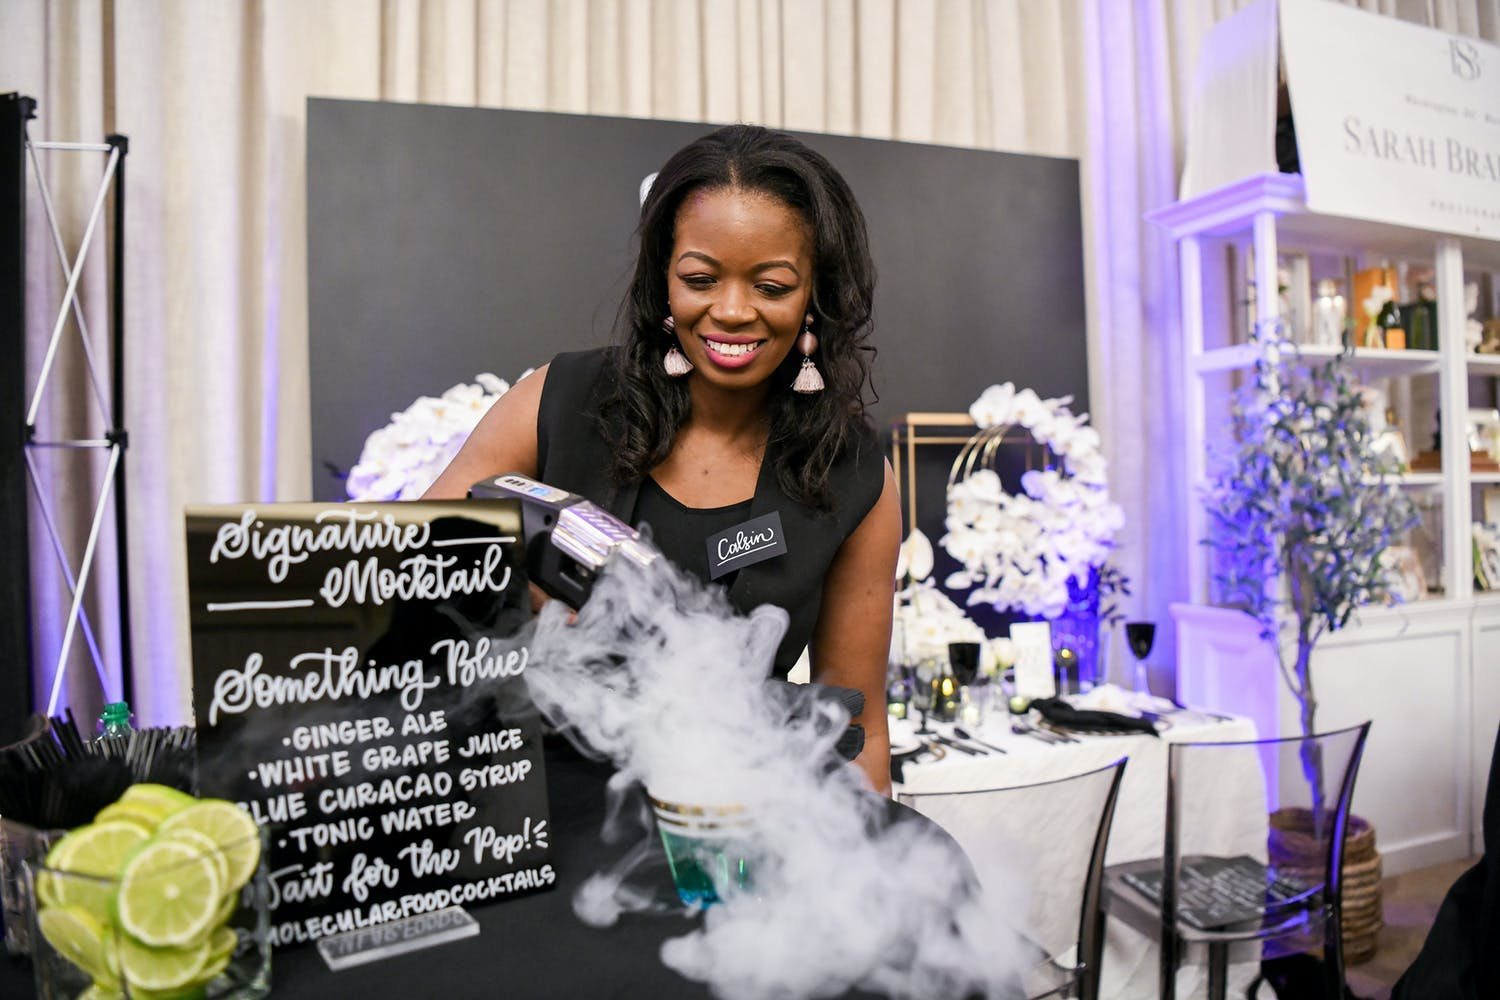 Molecular mixologist makes smoky mocktail for corporate event | PartySlate